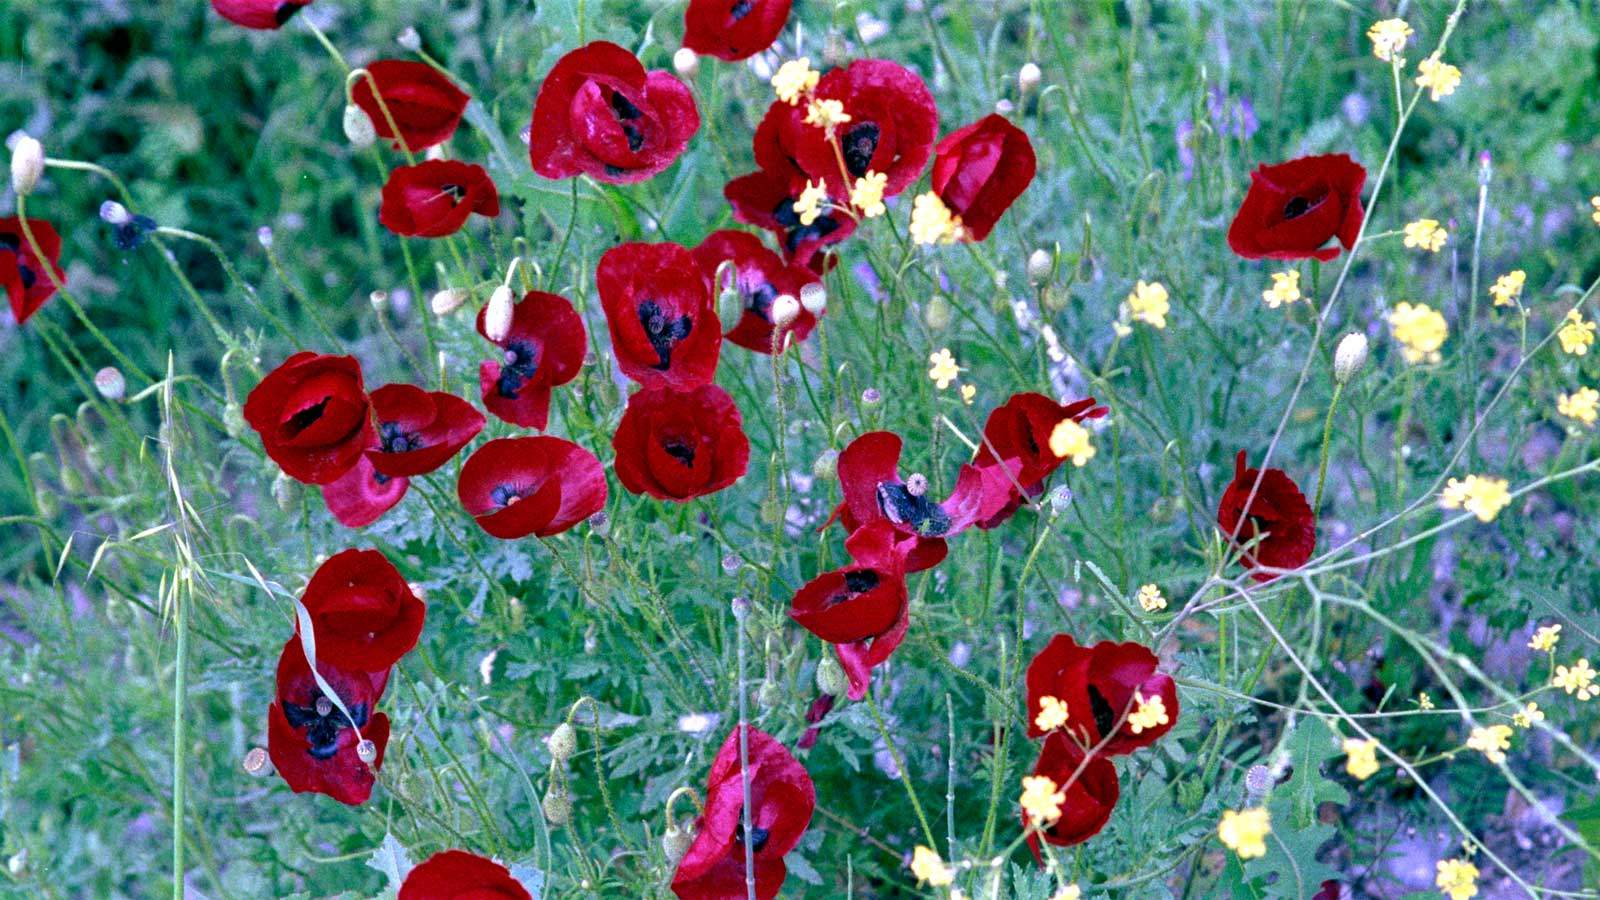 Poppies in the field - Color cast removed